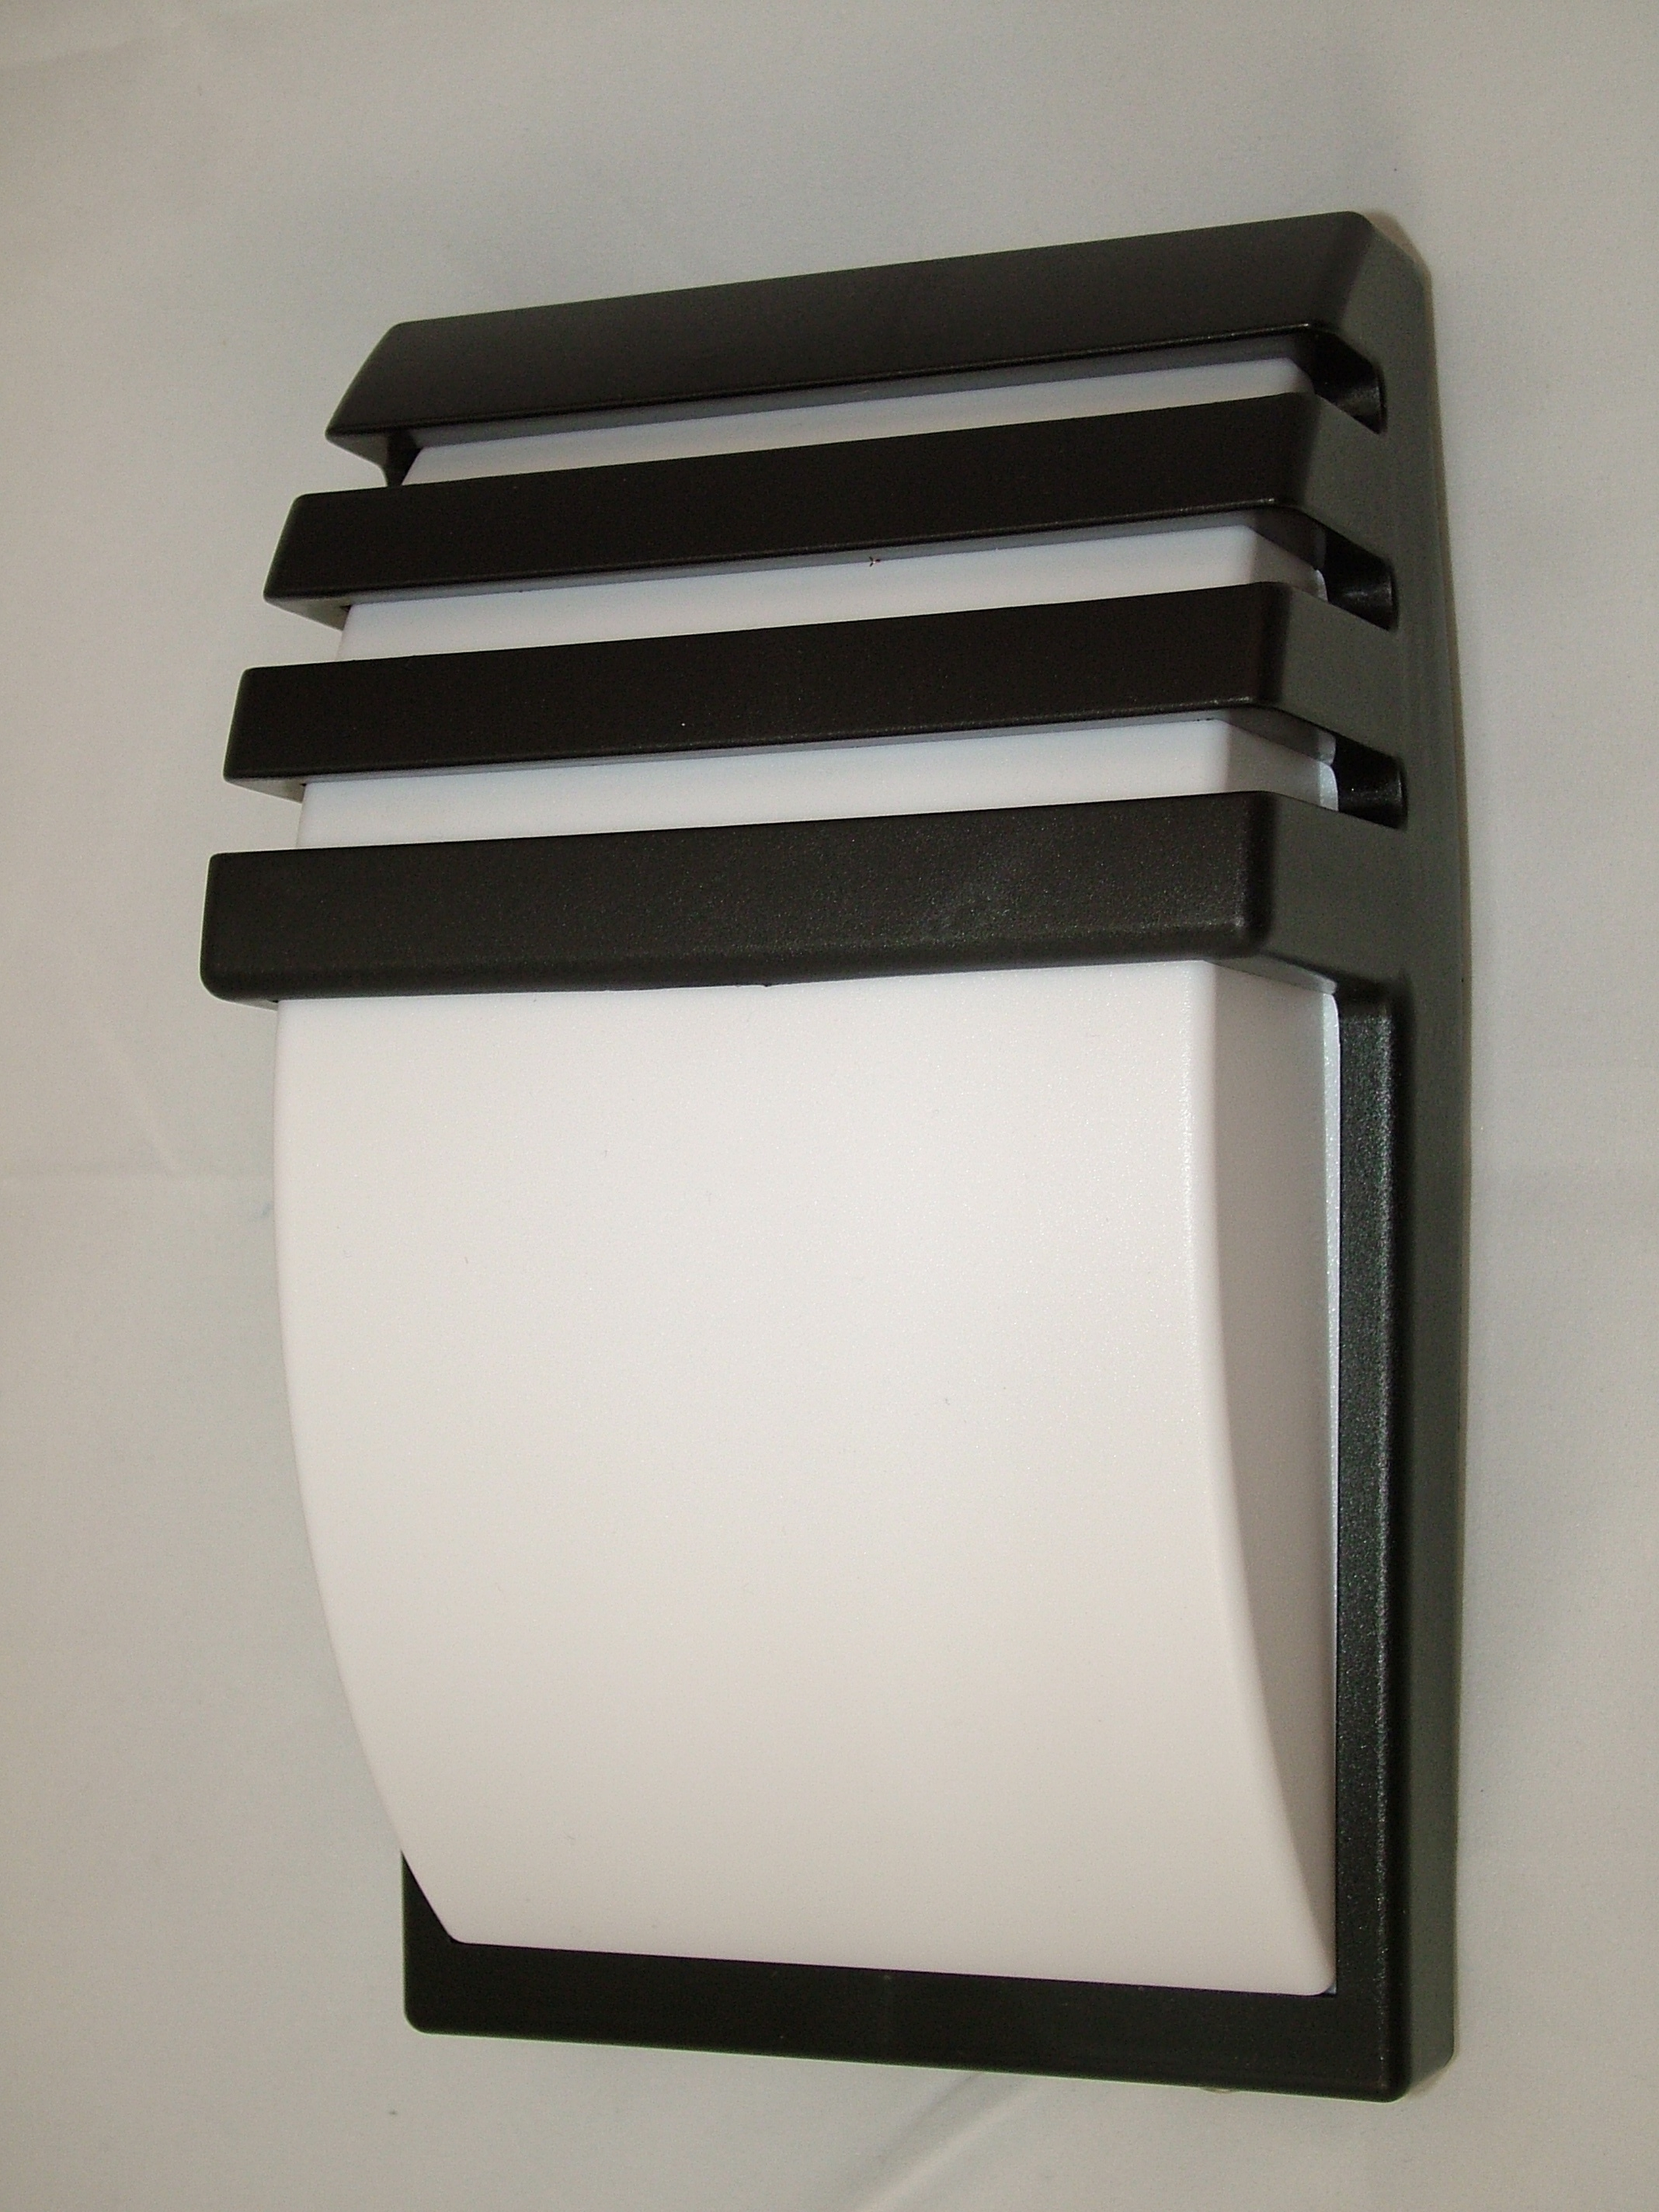 Large Outdoor Modern Wall Mounted Lighting Fixtures With Black Inside Widely Used Outdoor Wall Lighting Fixtures (View 9 of 20)